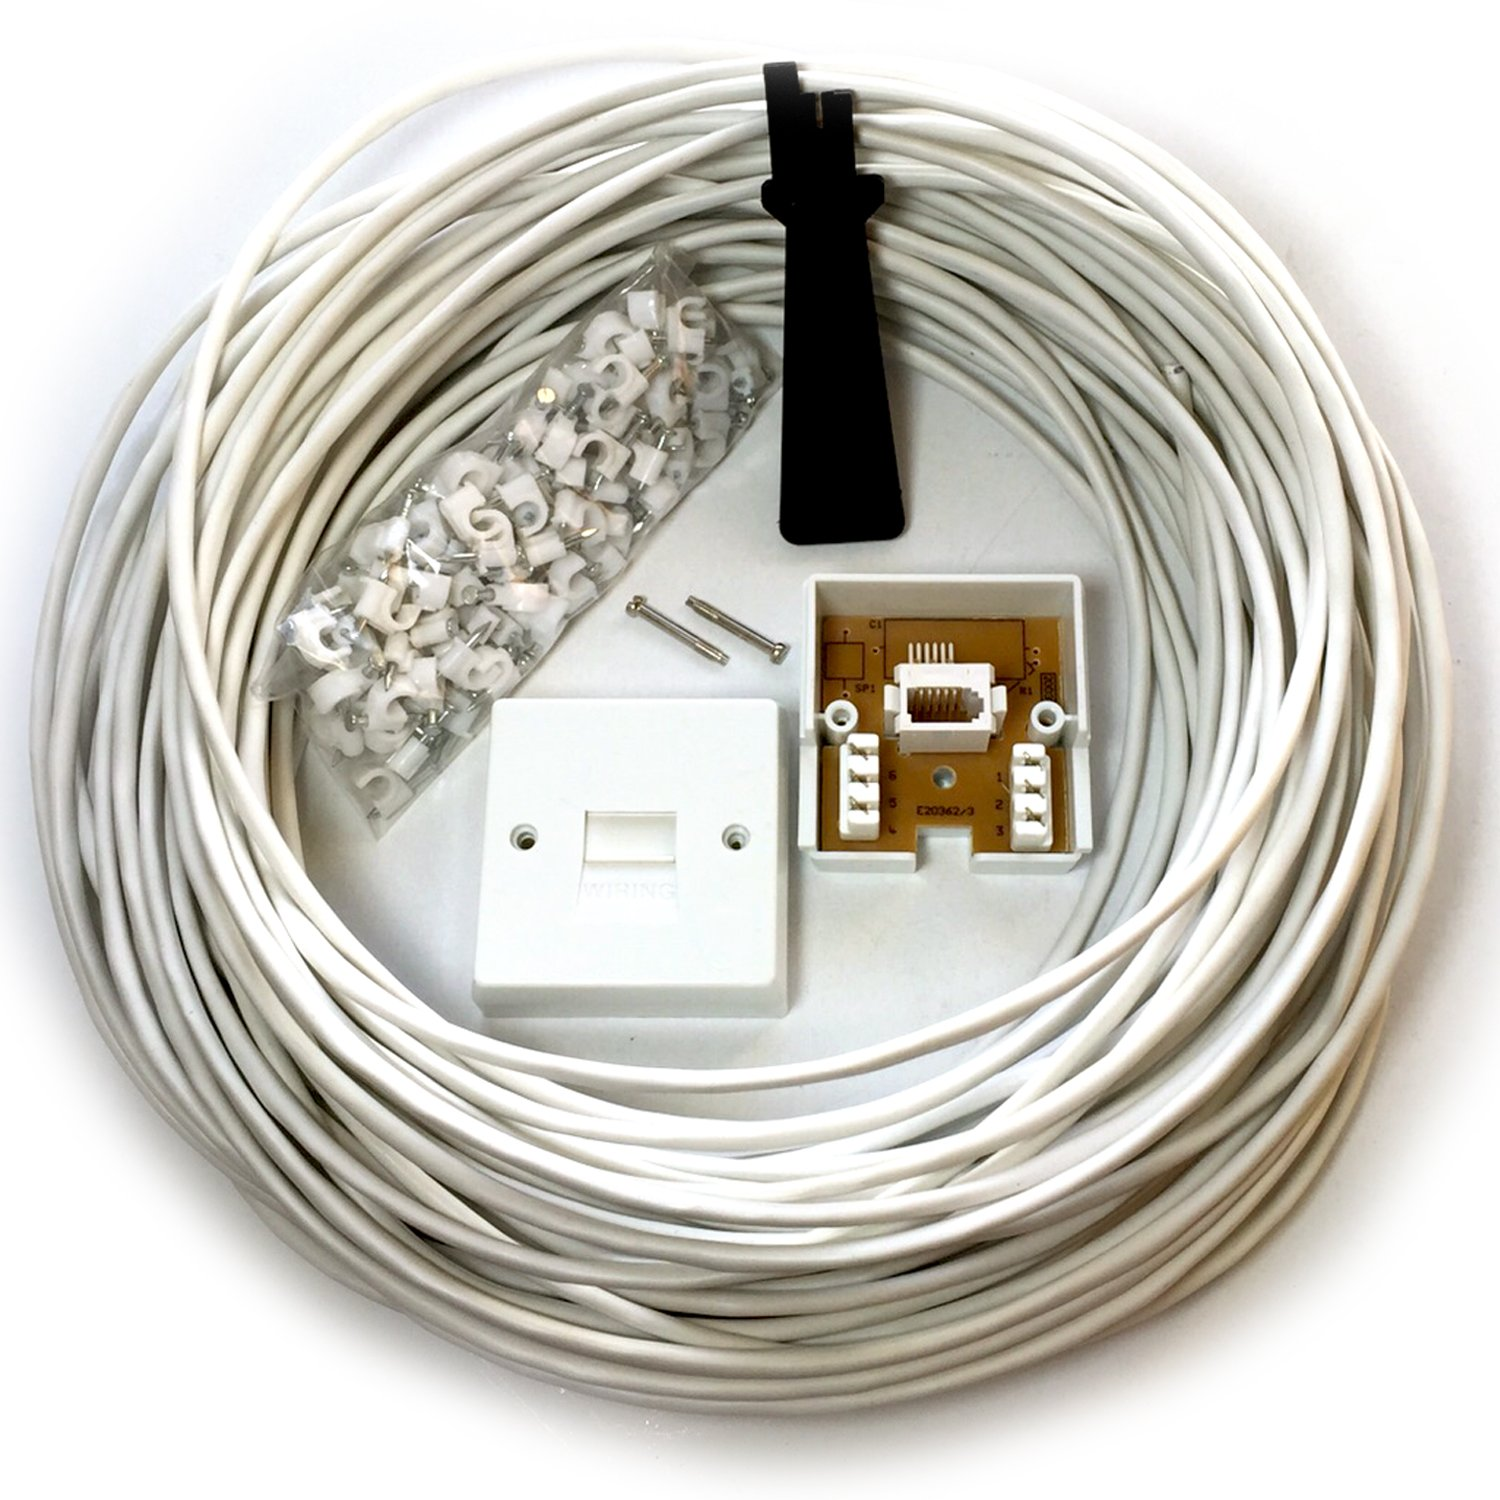 Loops 25m Bt Telephone Master Socket Box Line Extension Cable Kit Wiring Distribution 10m 15m 20m Lead Electronics